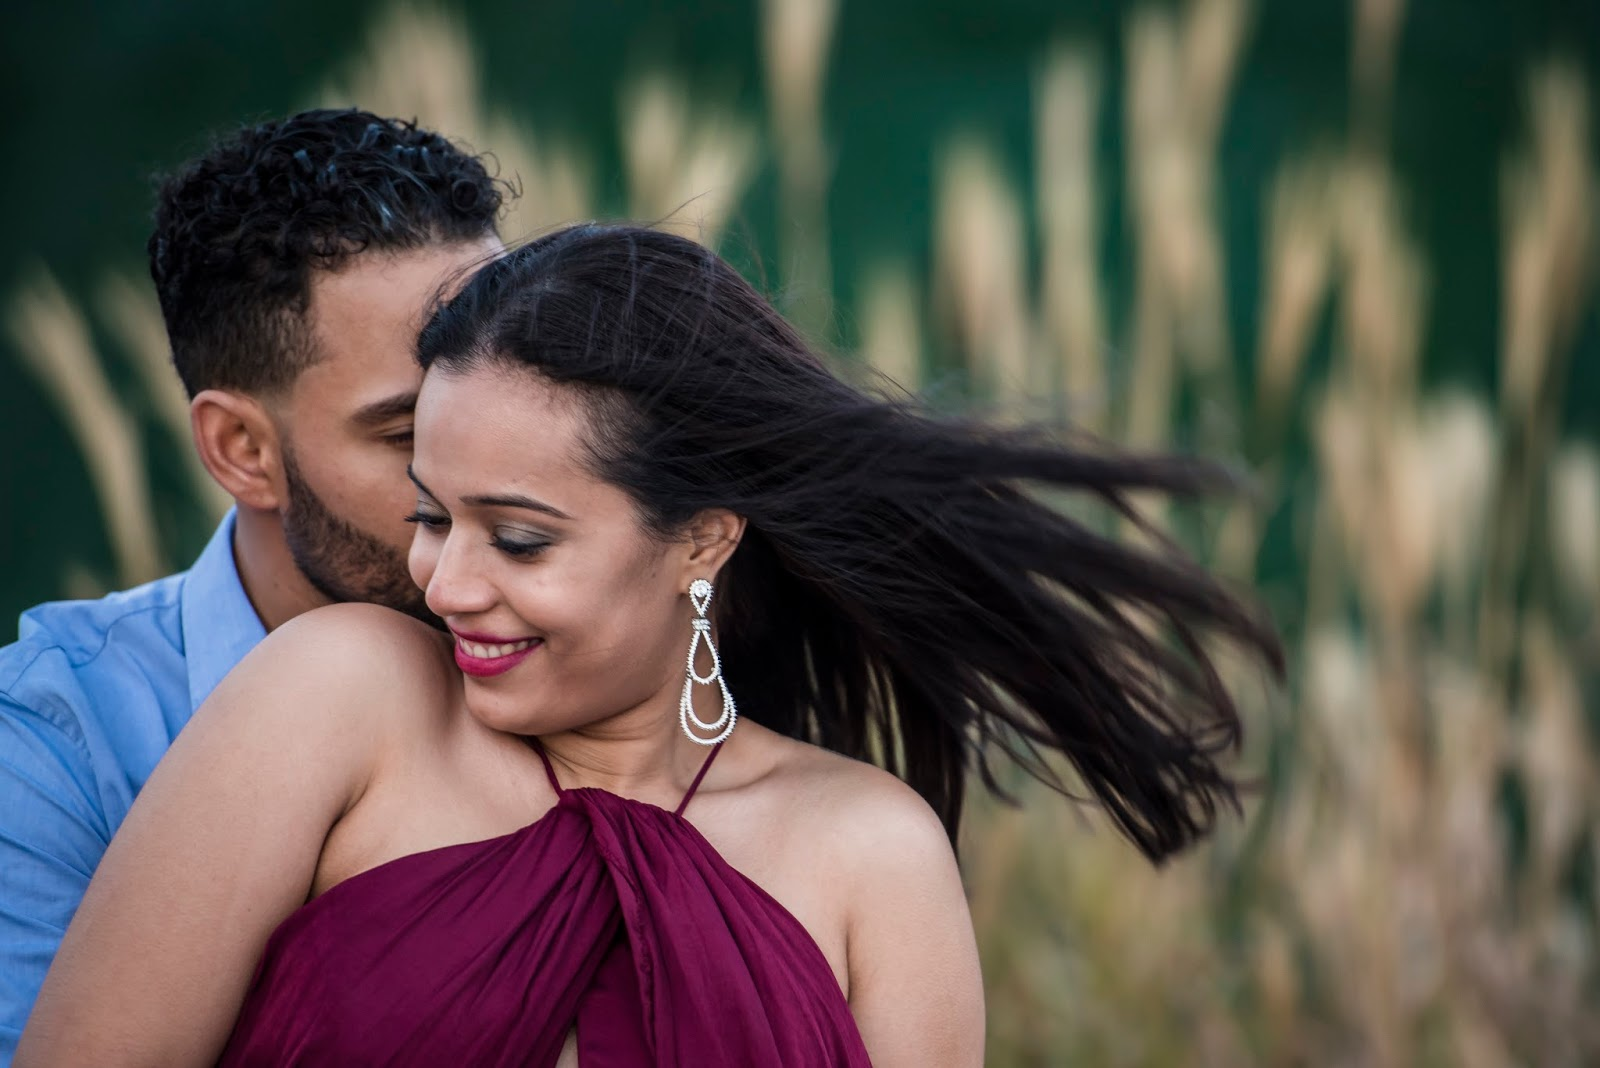 pre-wedding poses ideas